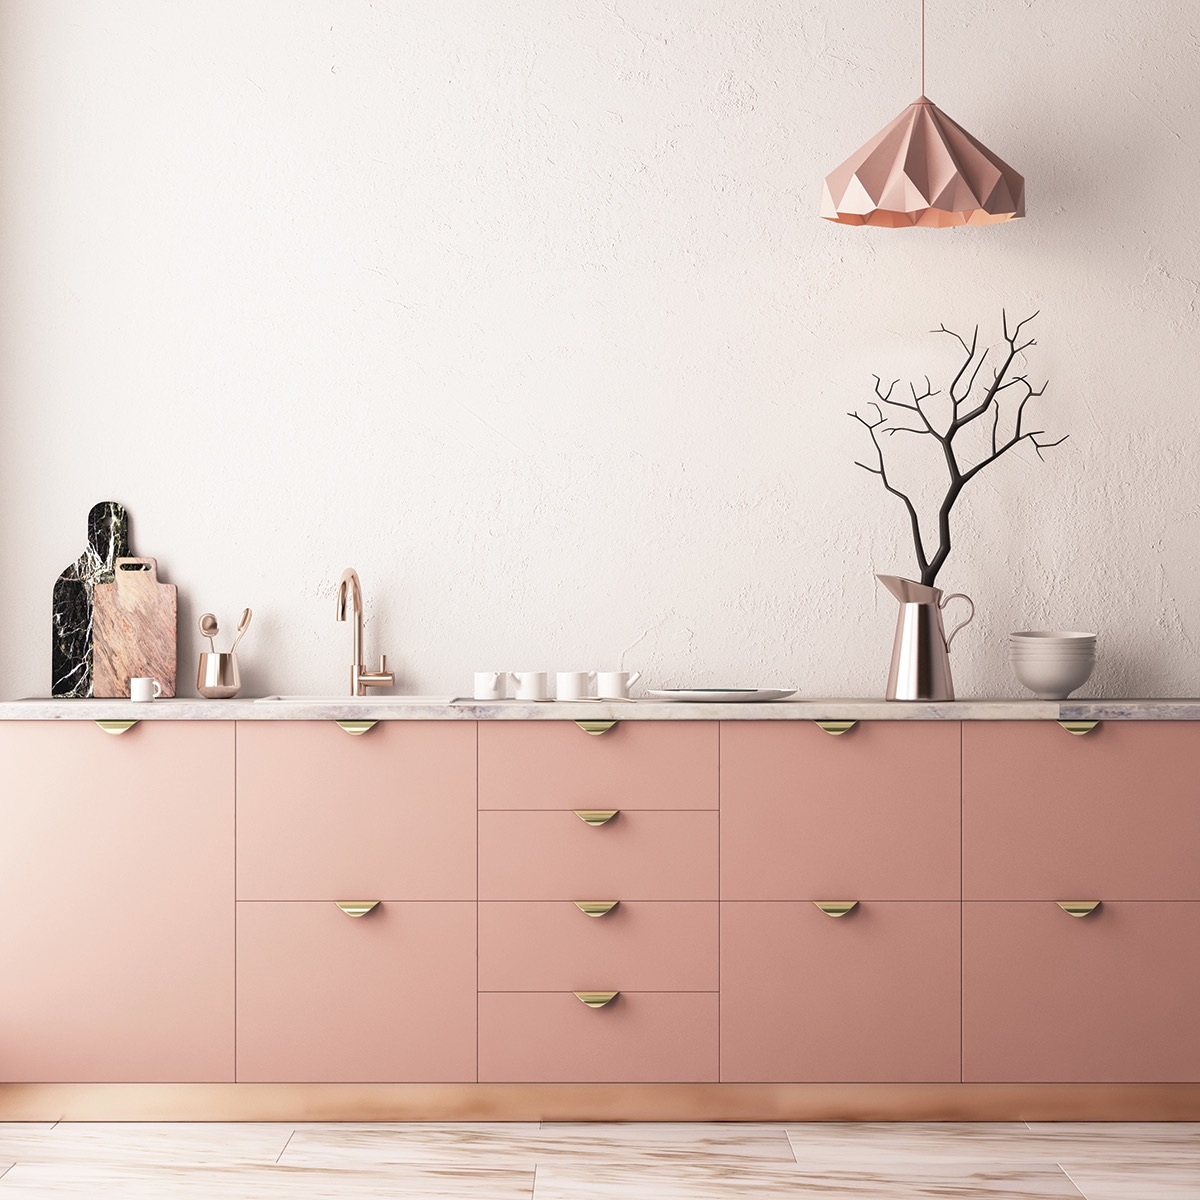 51 Inspirational Pink Kitchens With Tips & Accessories To Help You Design Yours images 16